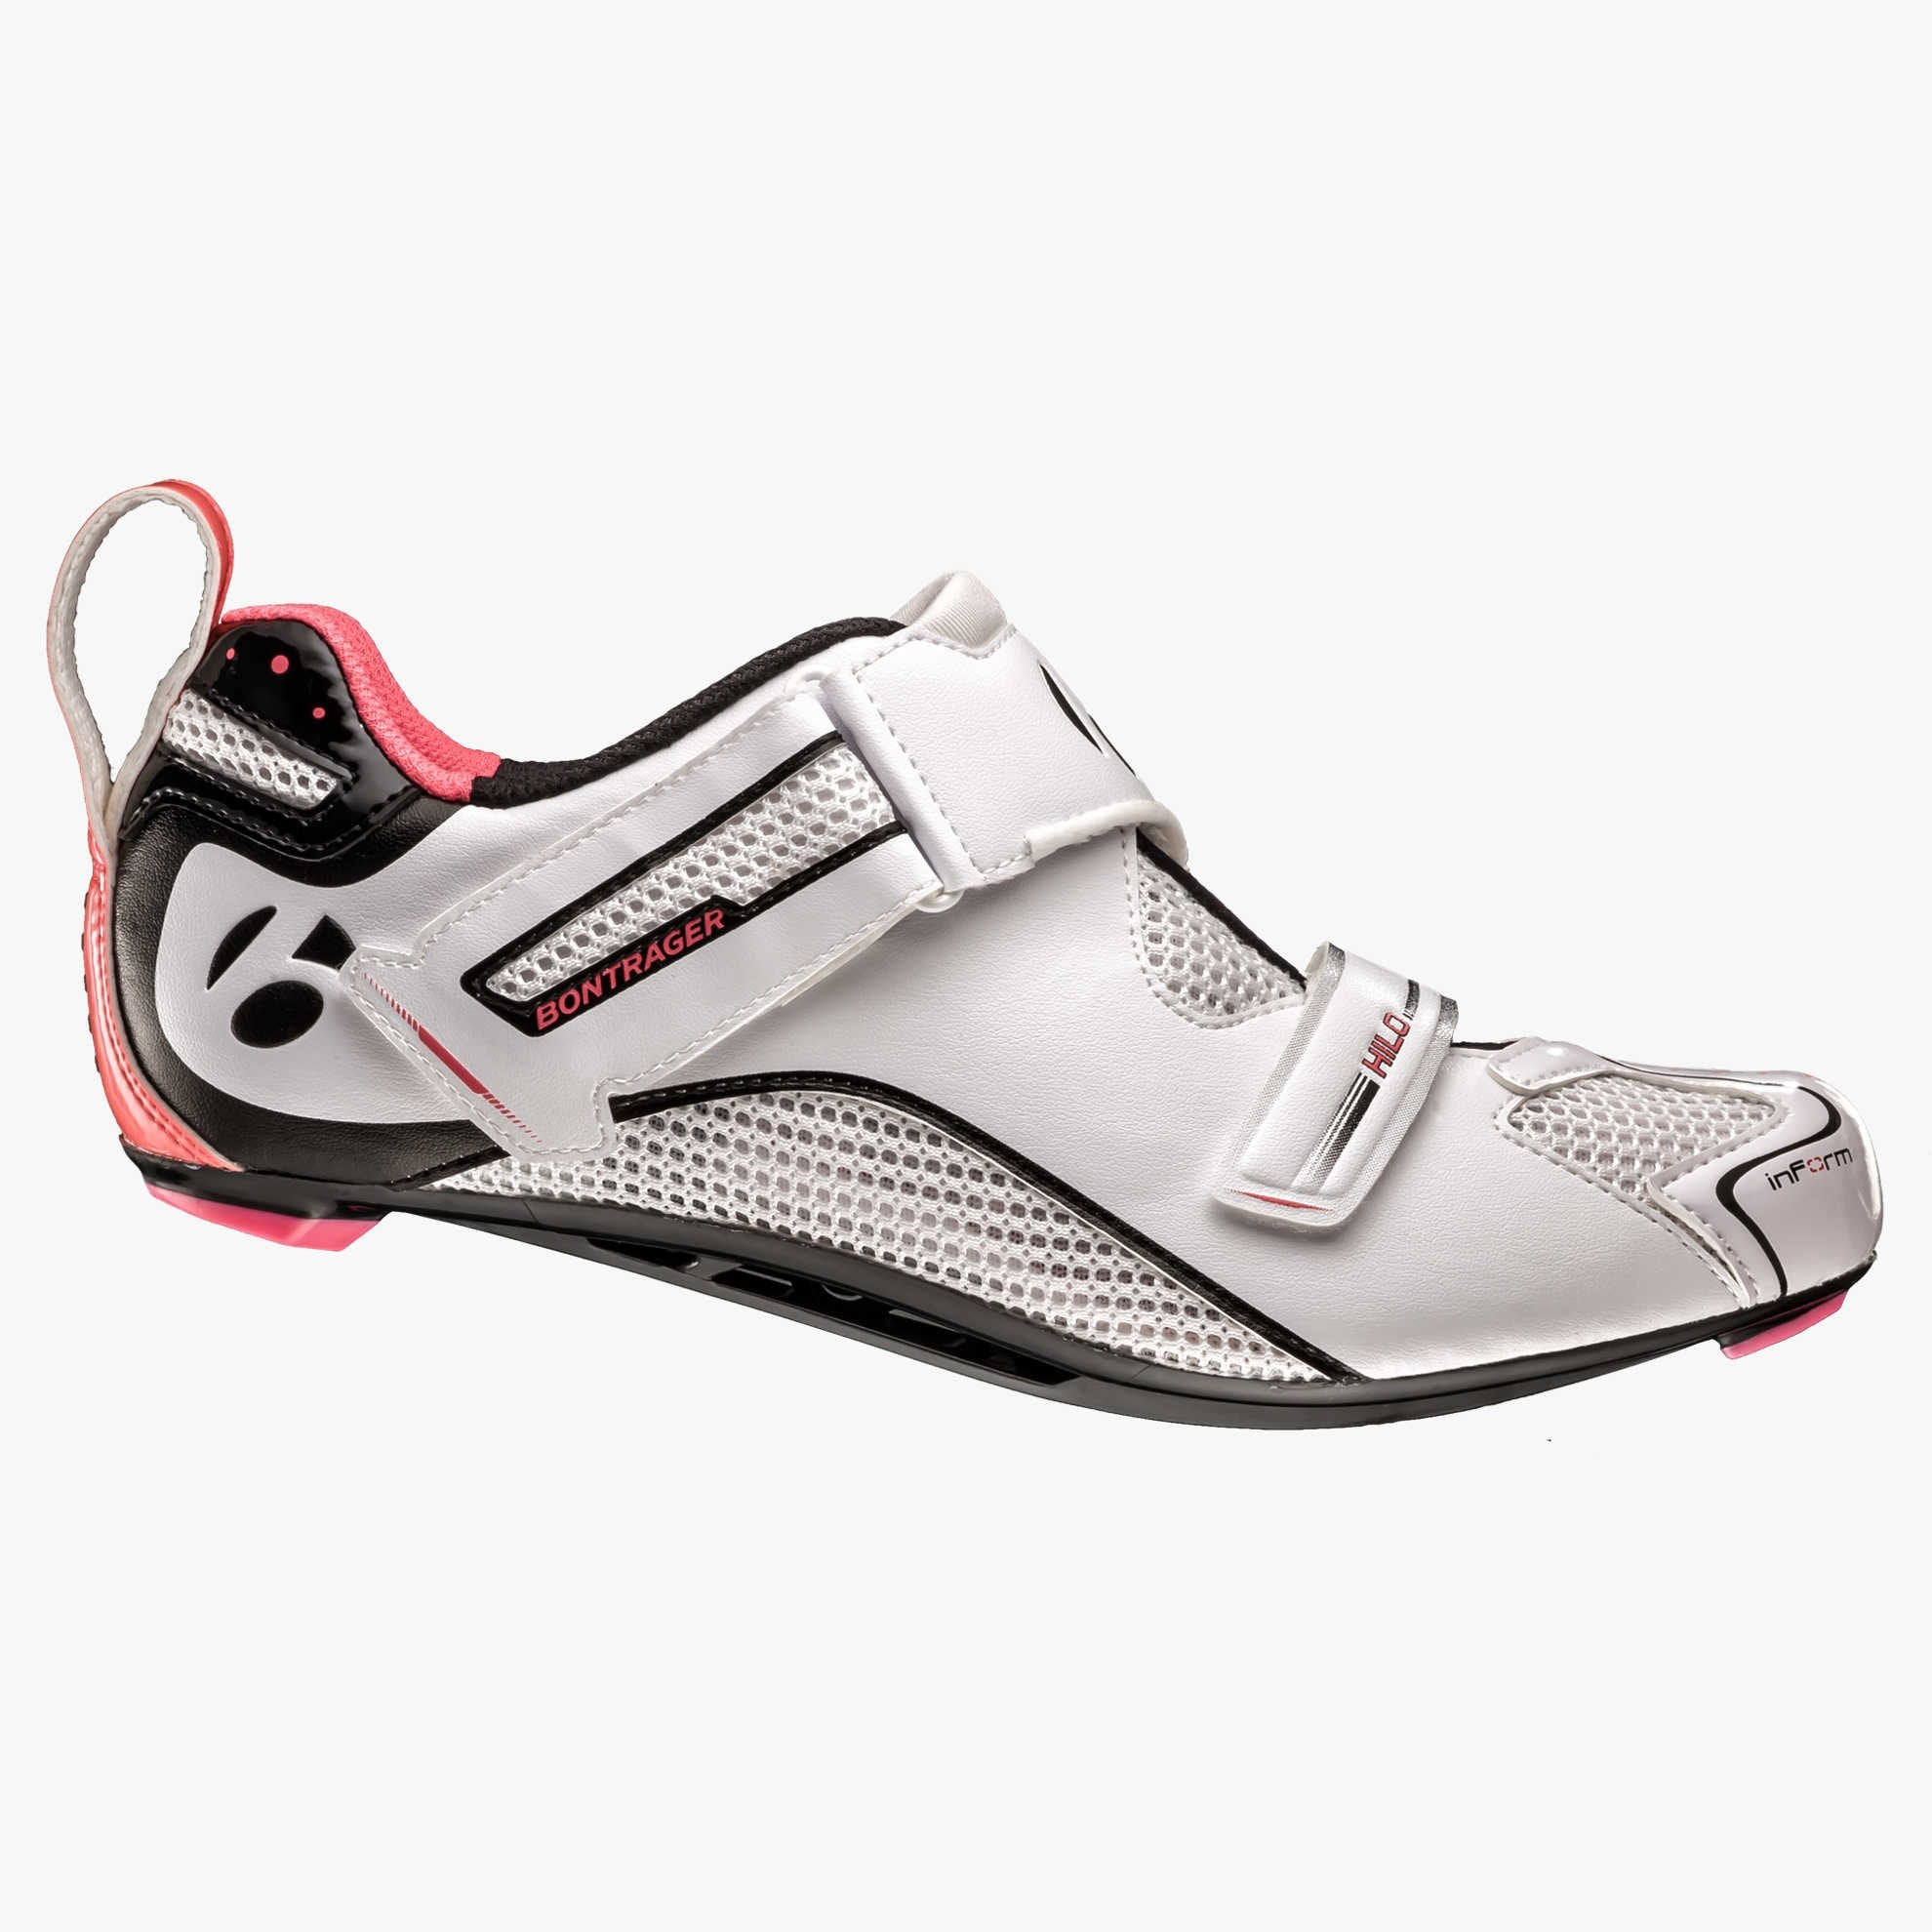 Bontrager Hilo Women's Triathlon Shoe